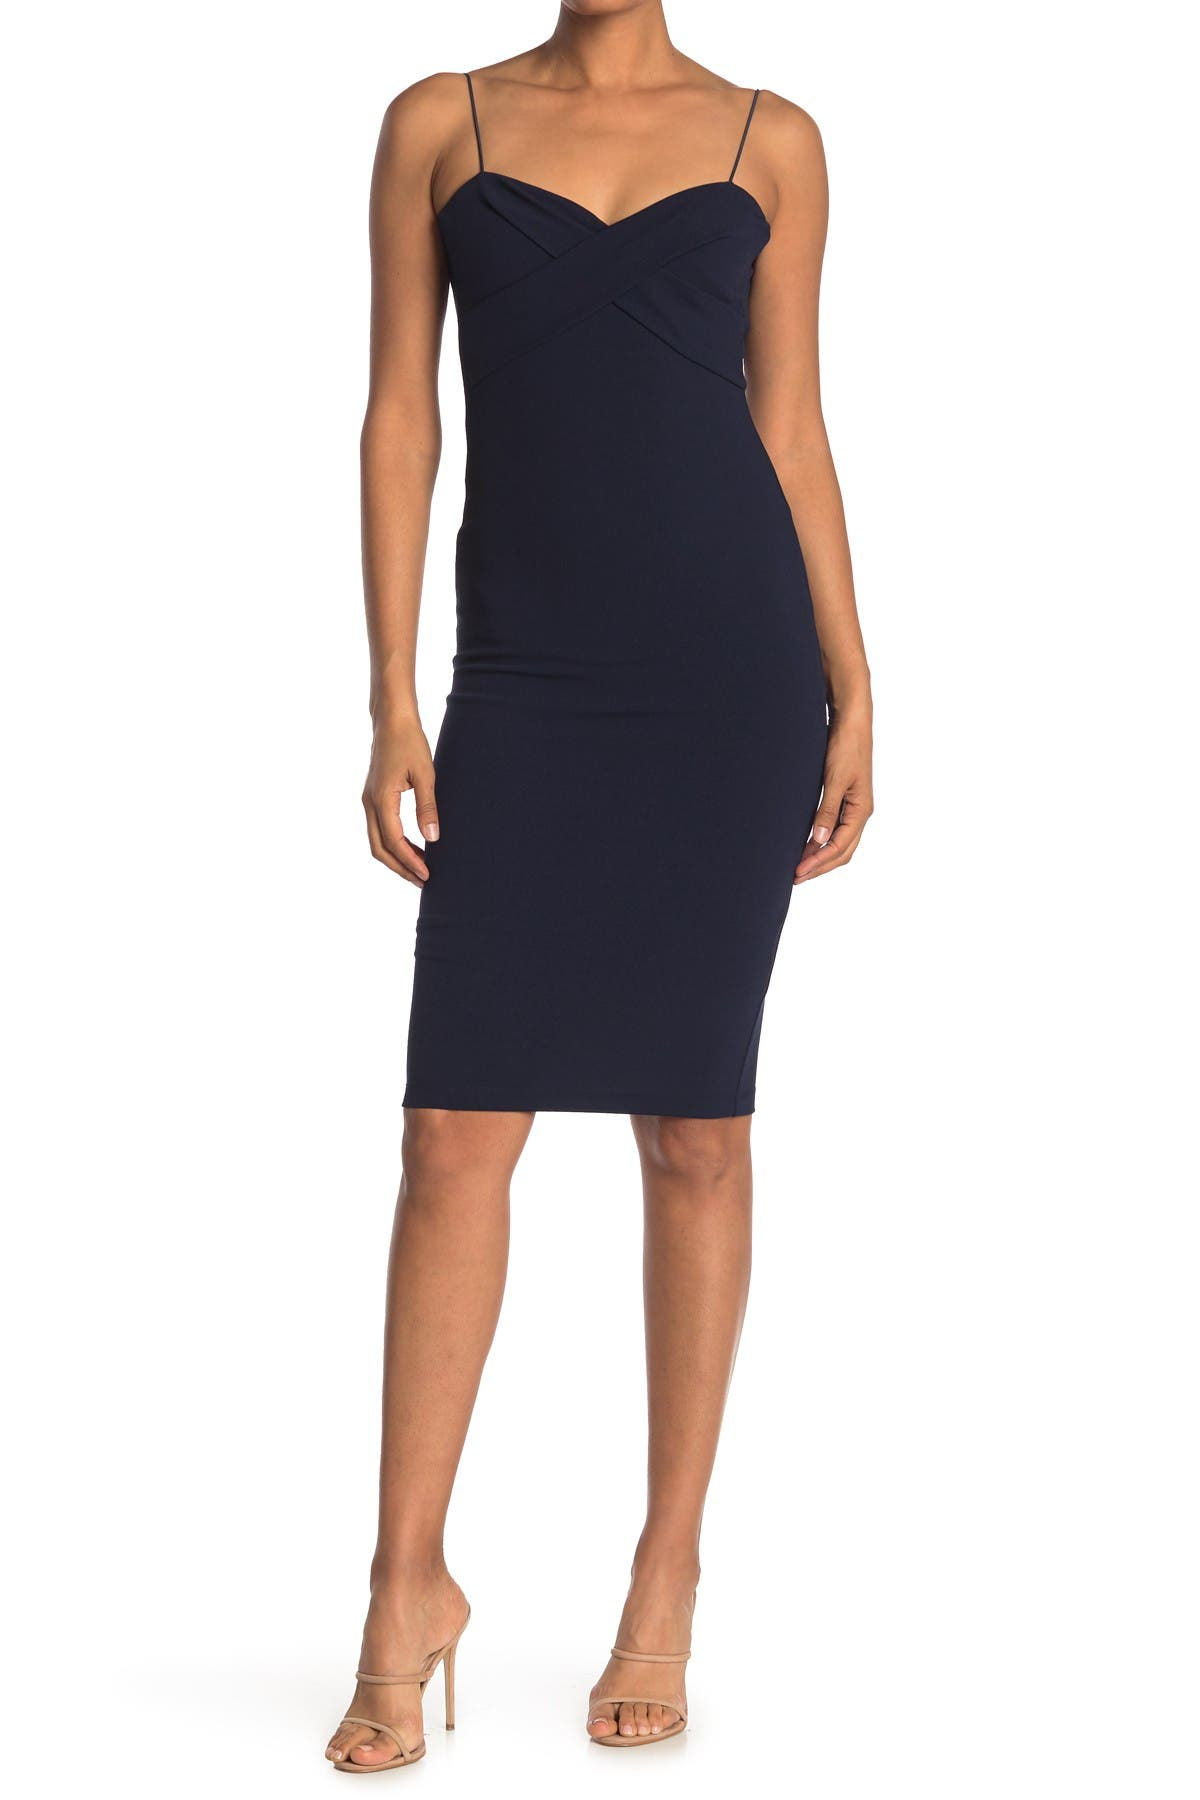 Image of Love by Design Cross Front Midi Dress